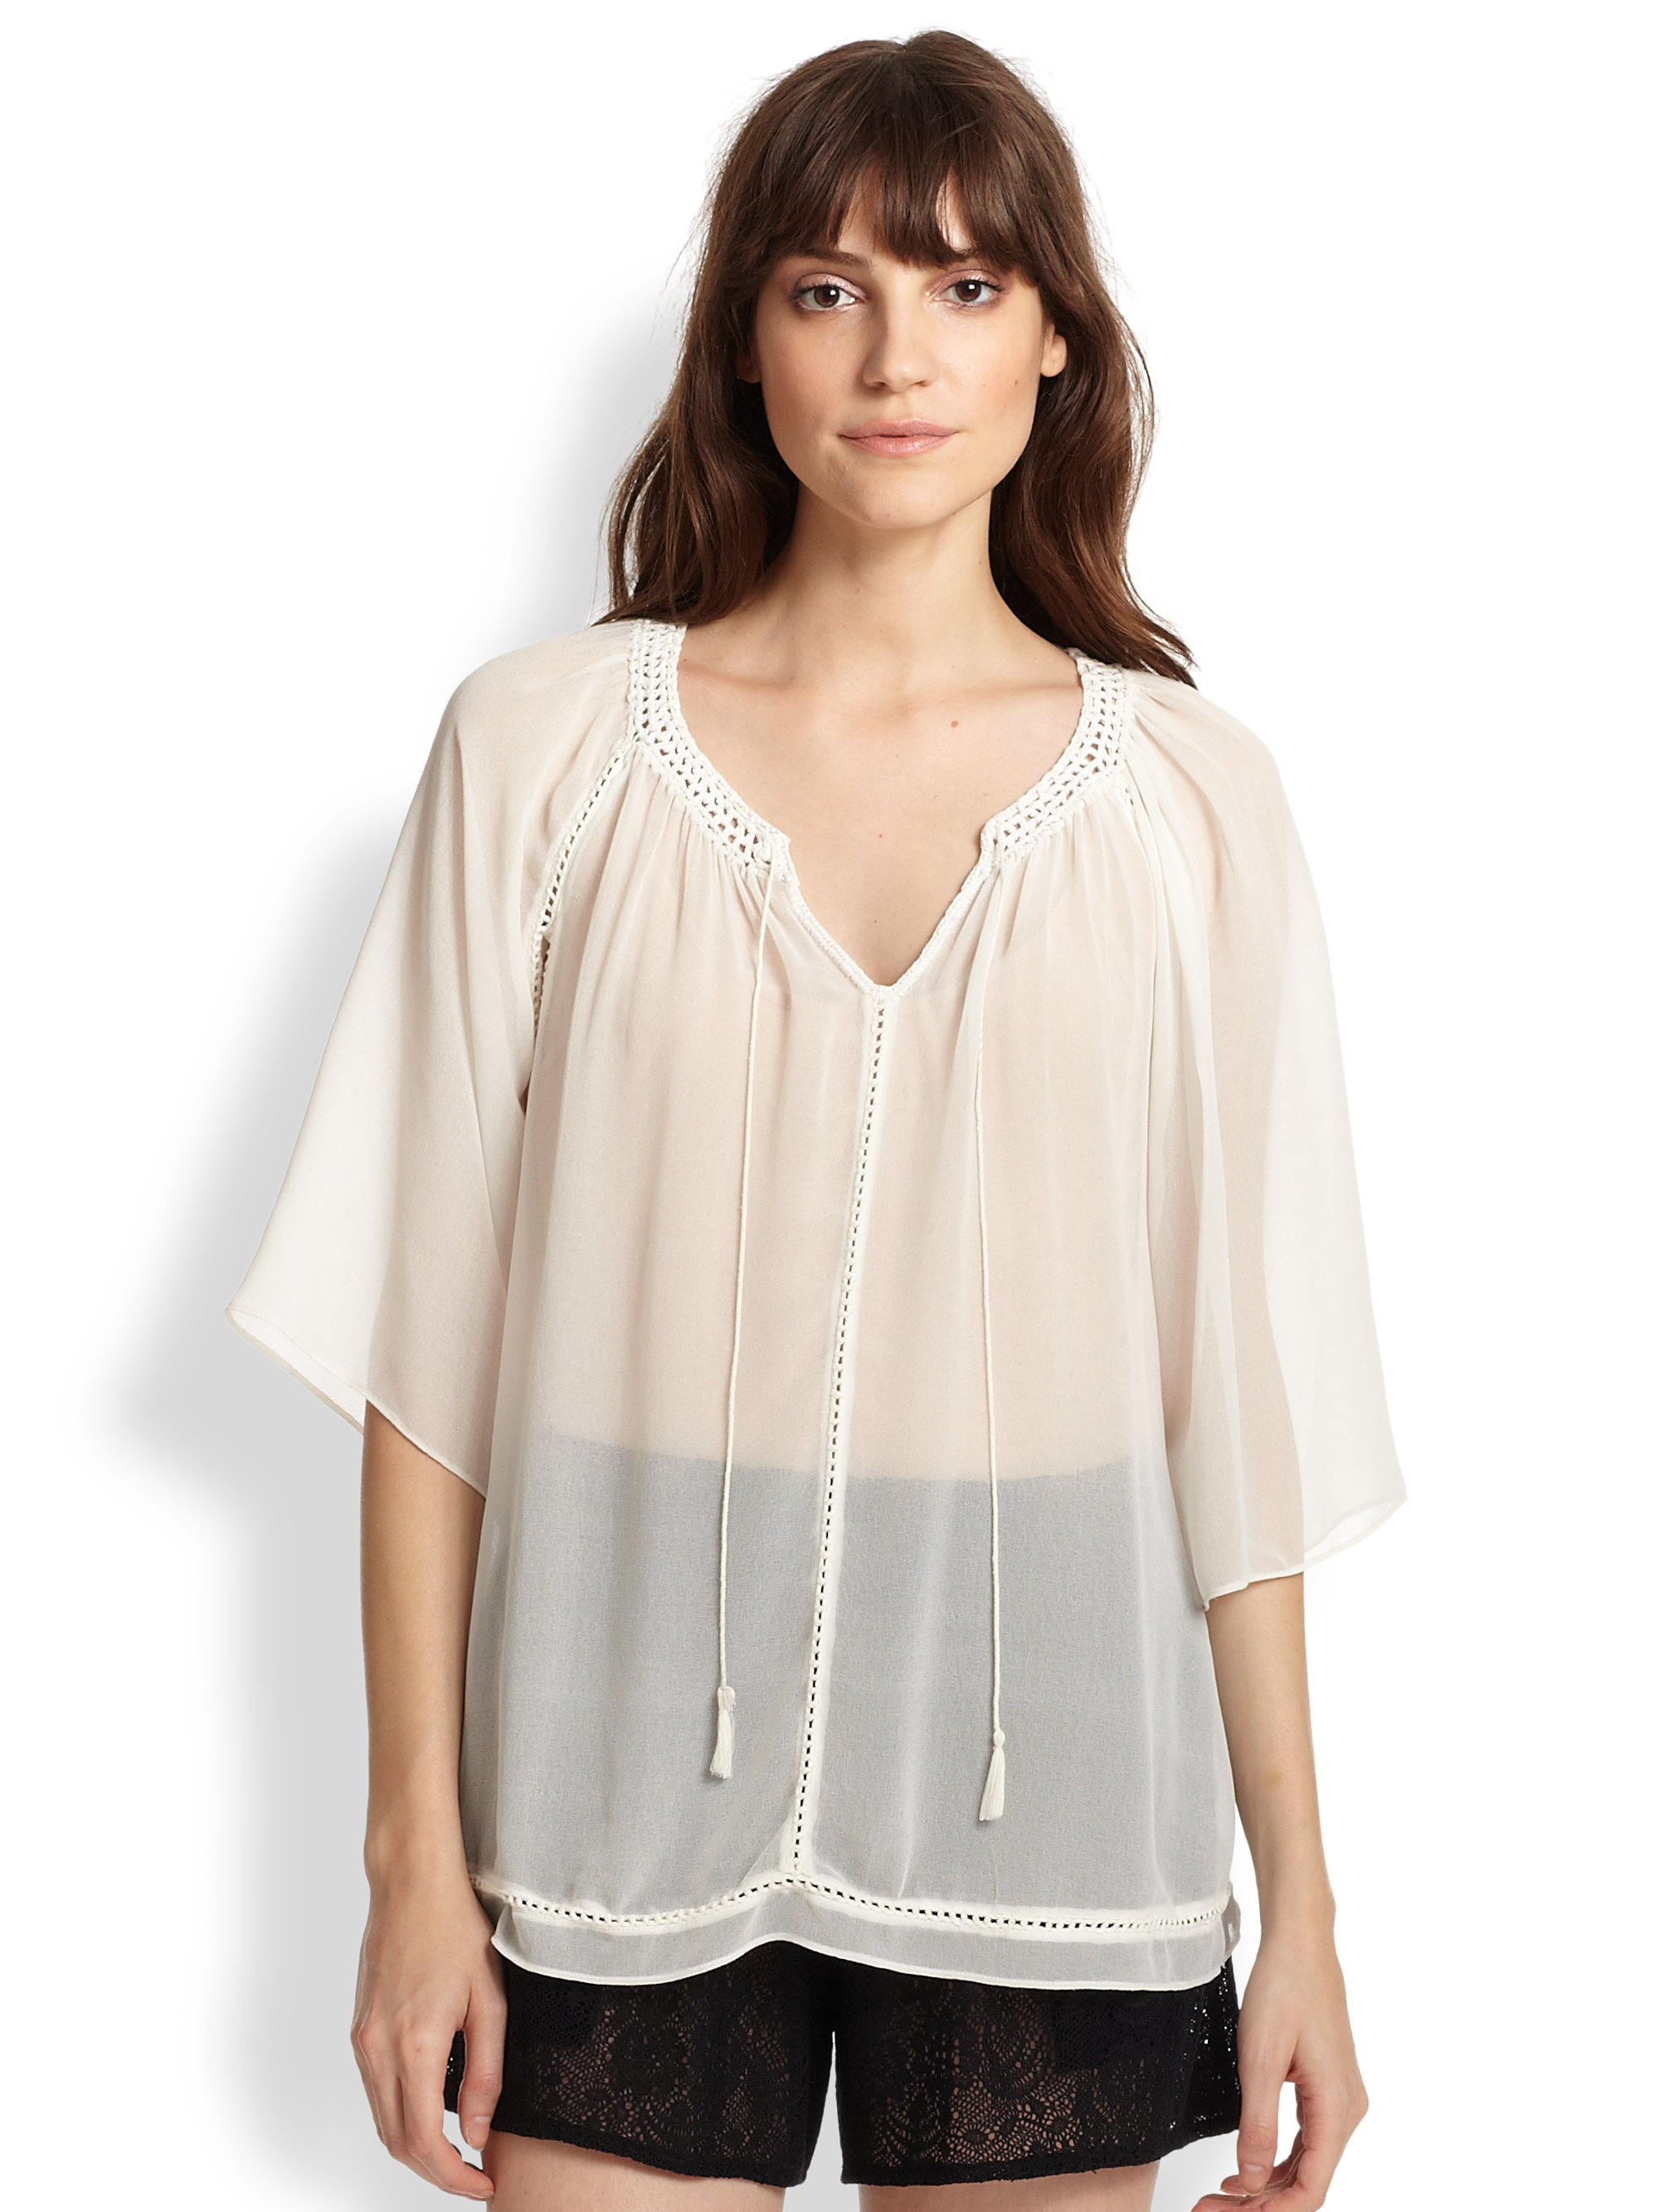 Blouse In Picture Sheer Woman 94